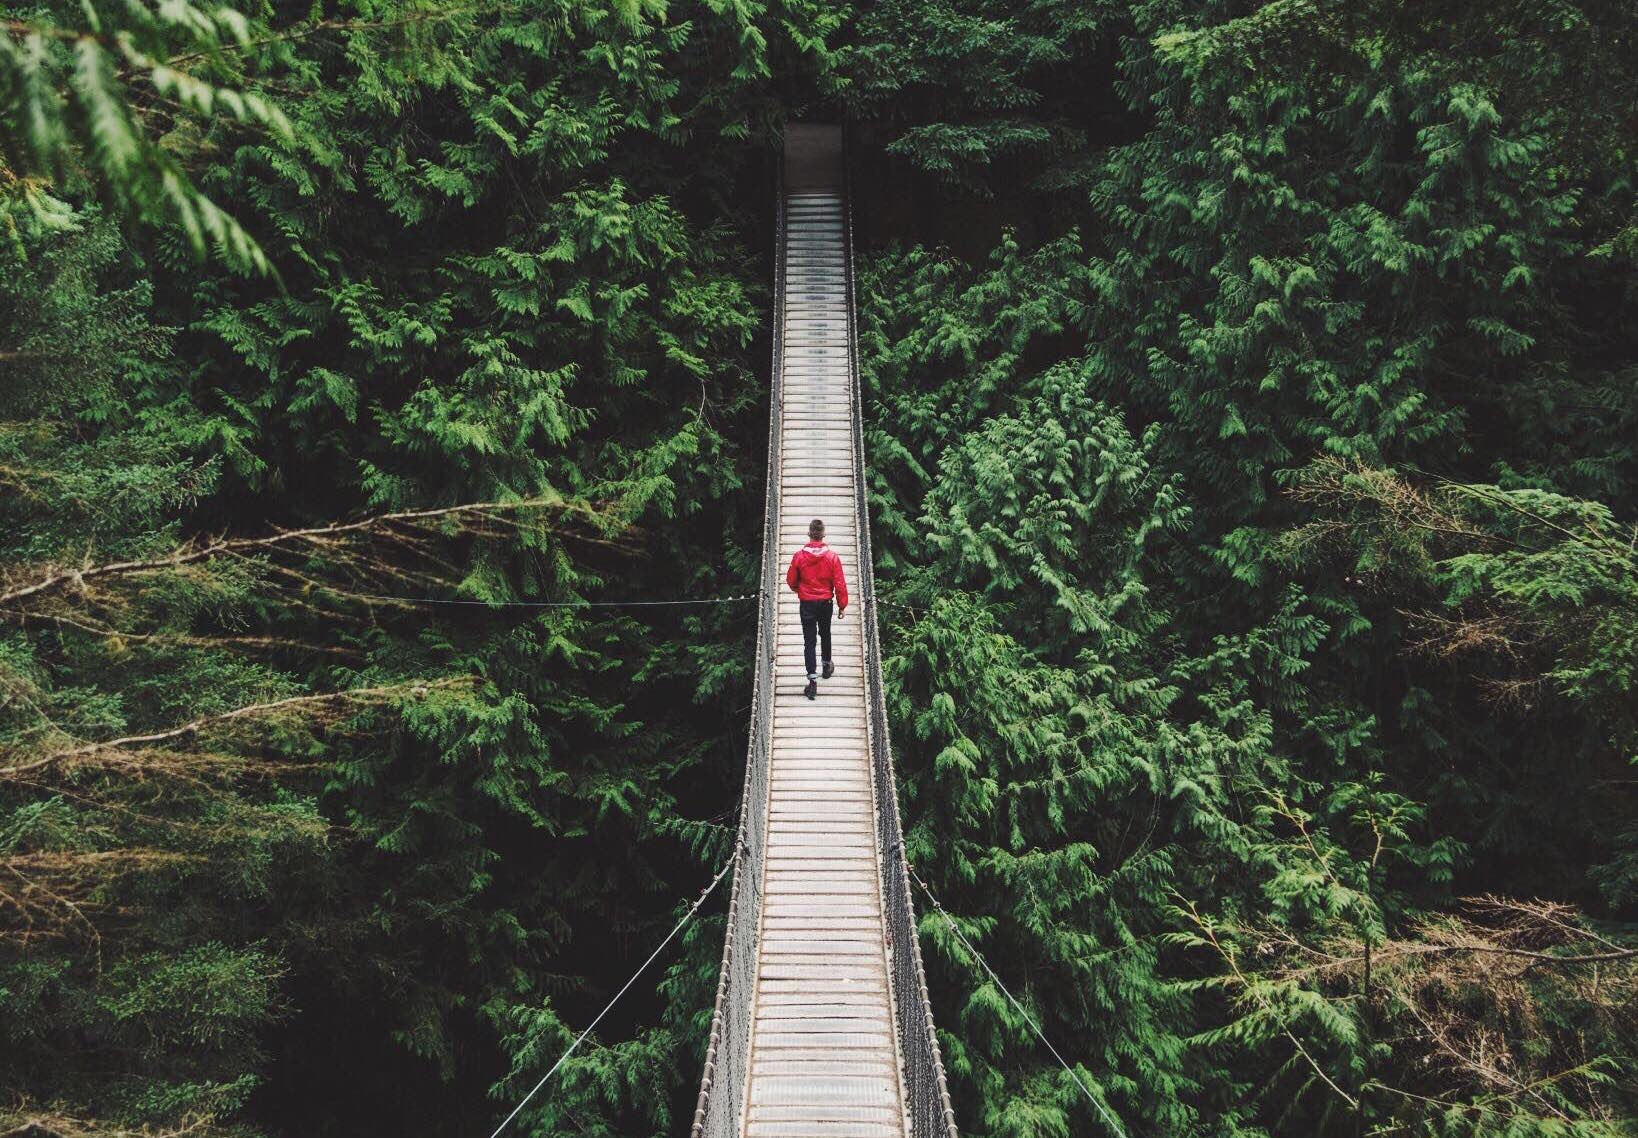 5 Outdoor Adventures 3h or Less from Toronto